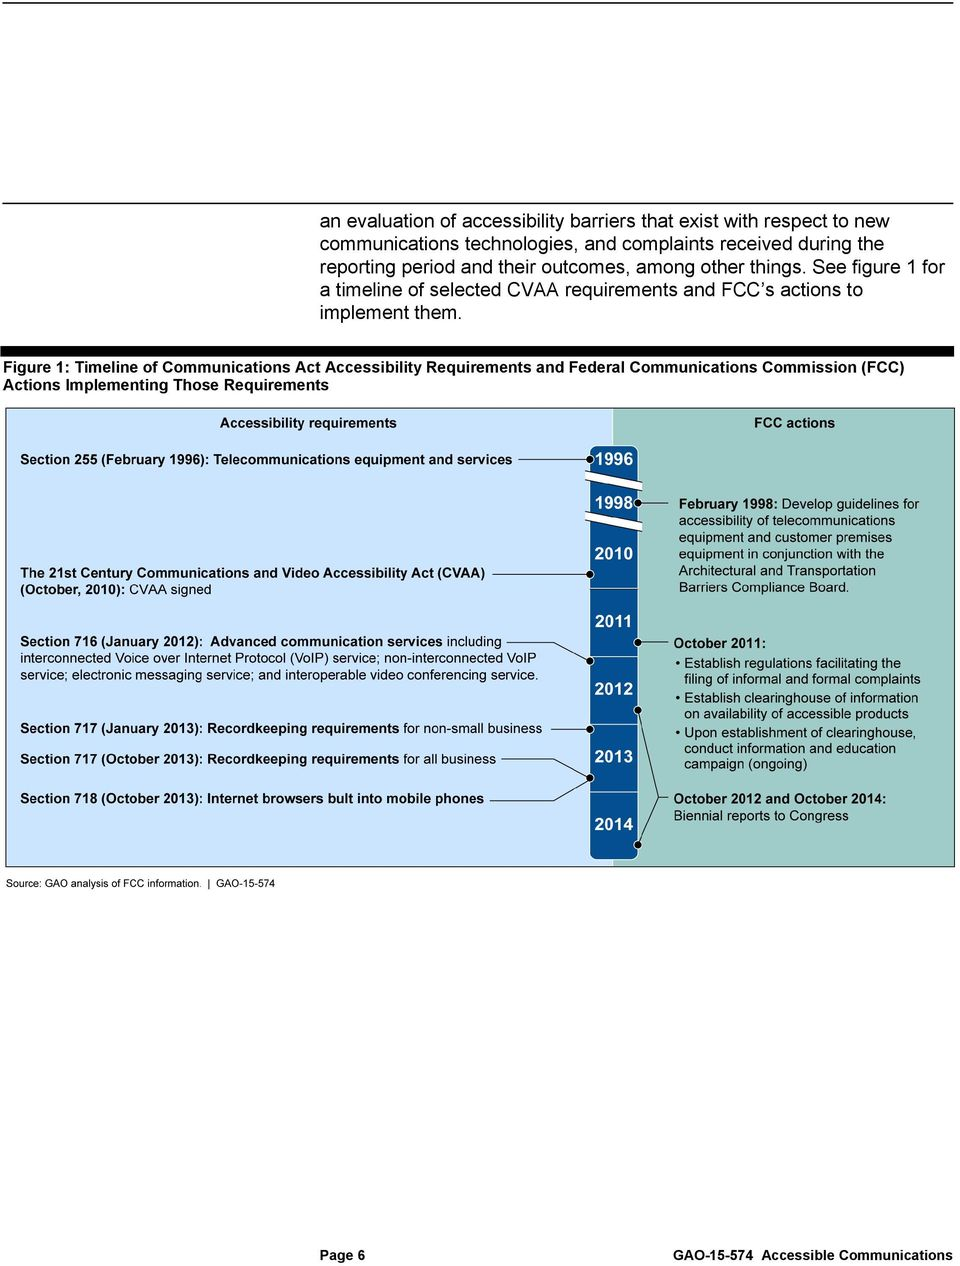 See figure 1 for a timeline of selected CVAA requirements and FCC s actions to implement them.